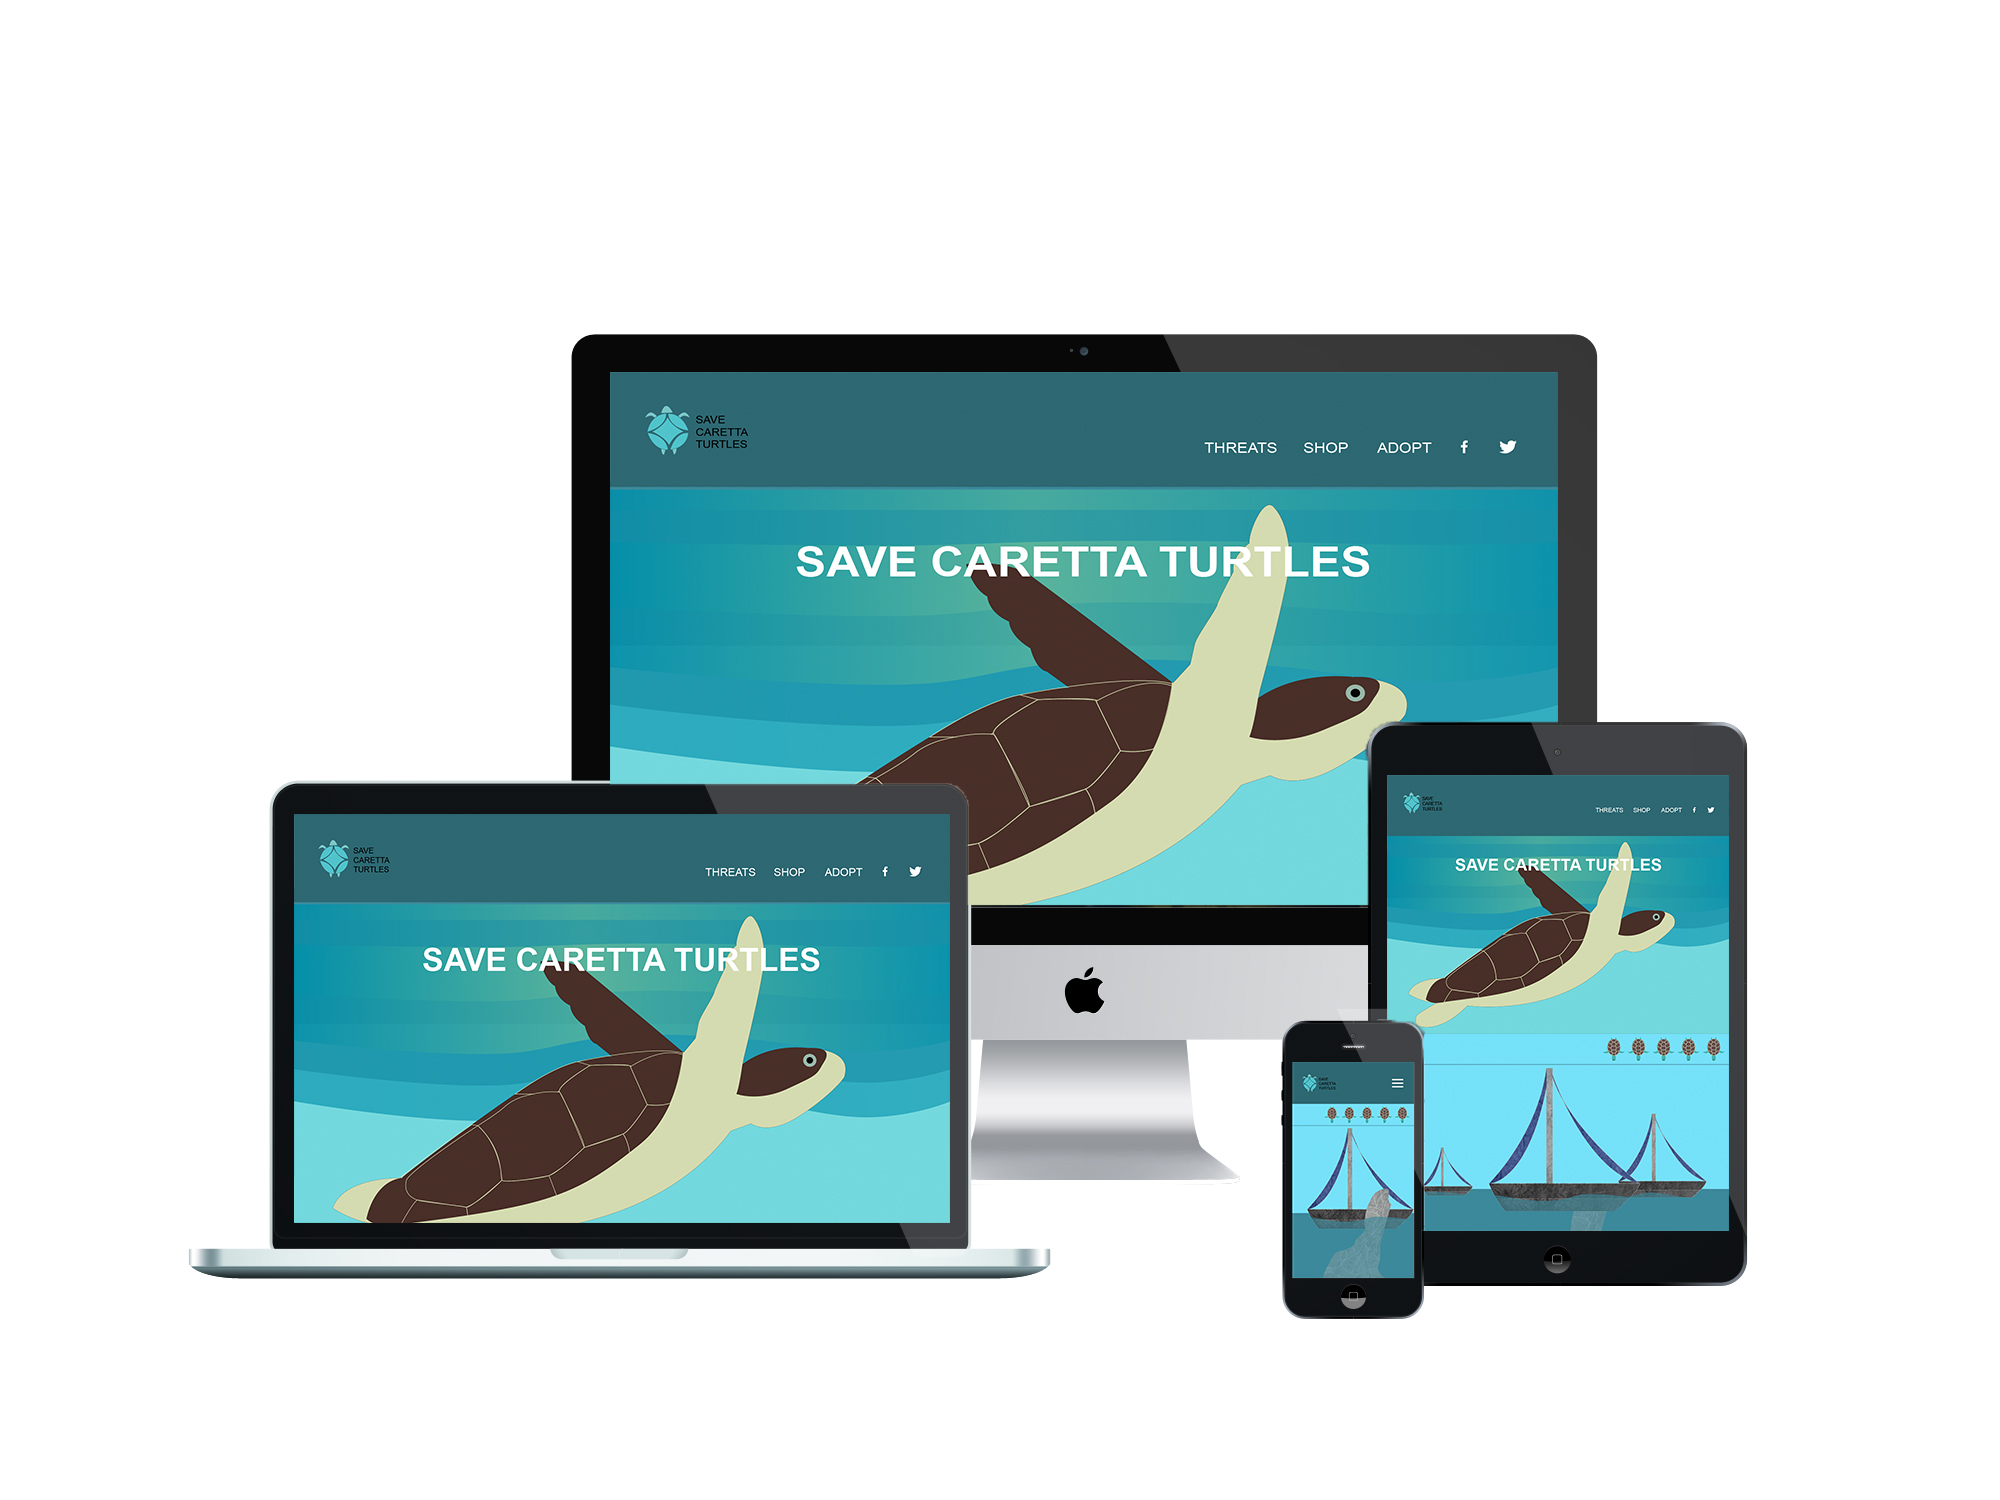 Save caretta turtles.org